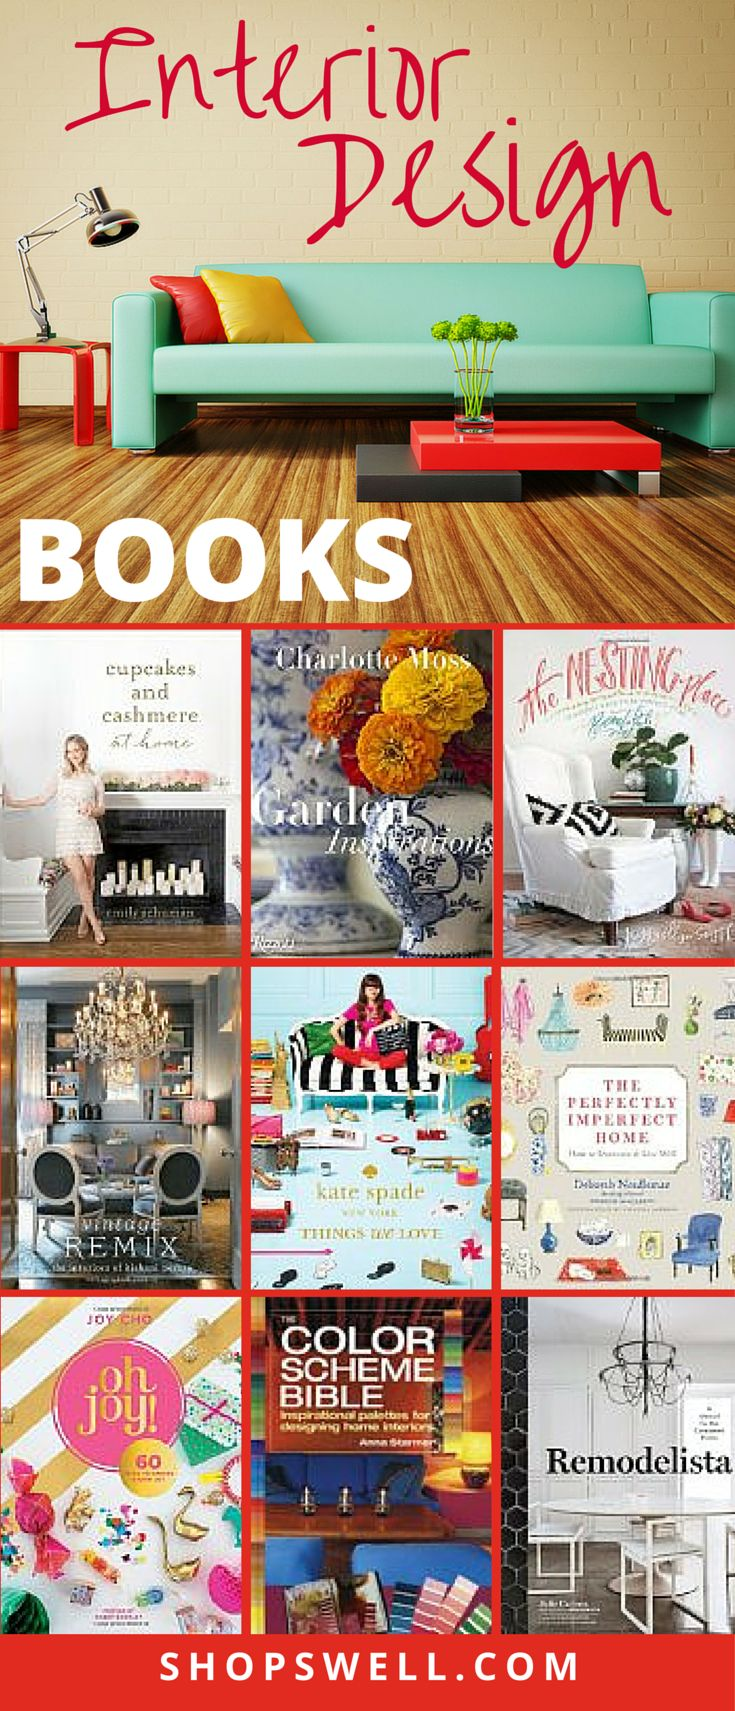 108 best books that playswell images on pinterest book lists 56 of the top modern coffee table books about interior design for the home geotapseo Choice Image